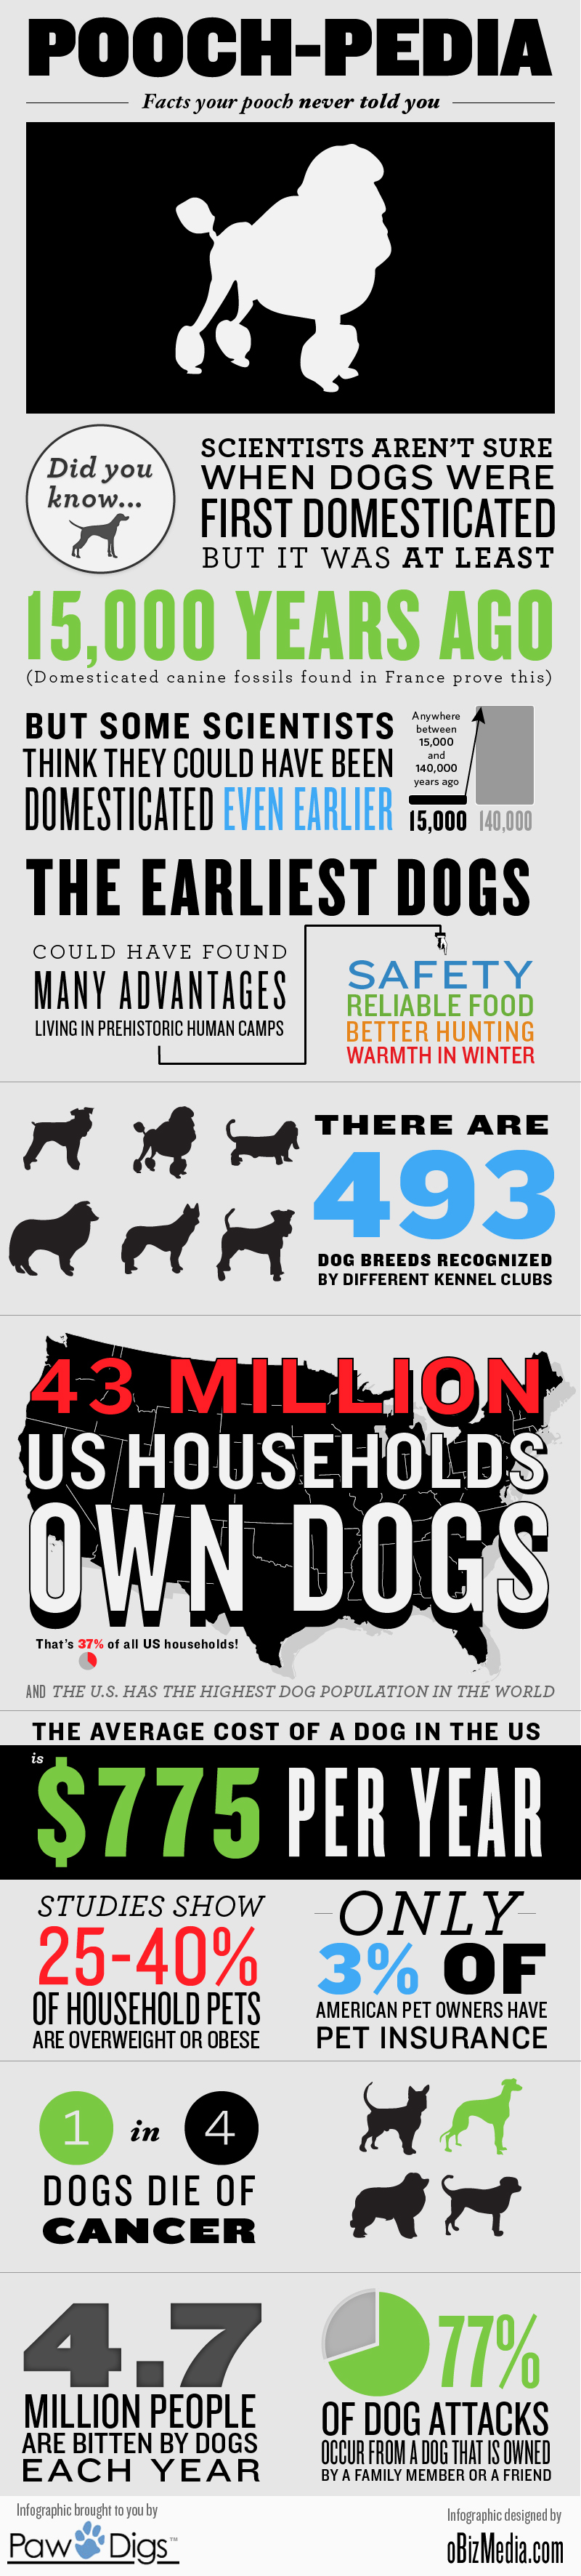 Poochpedia | Infographic